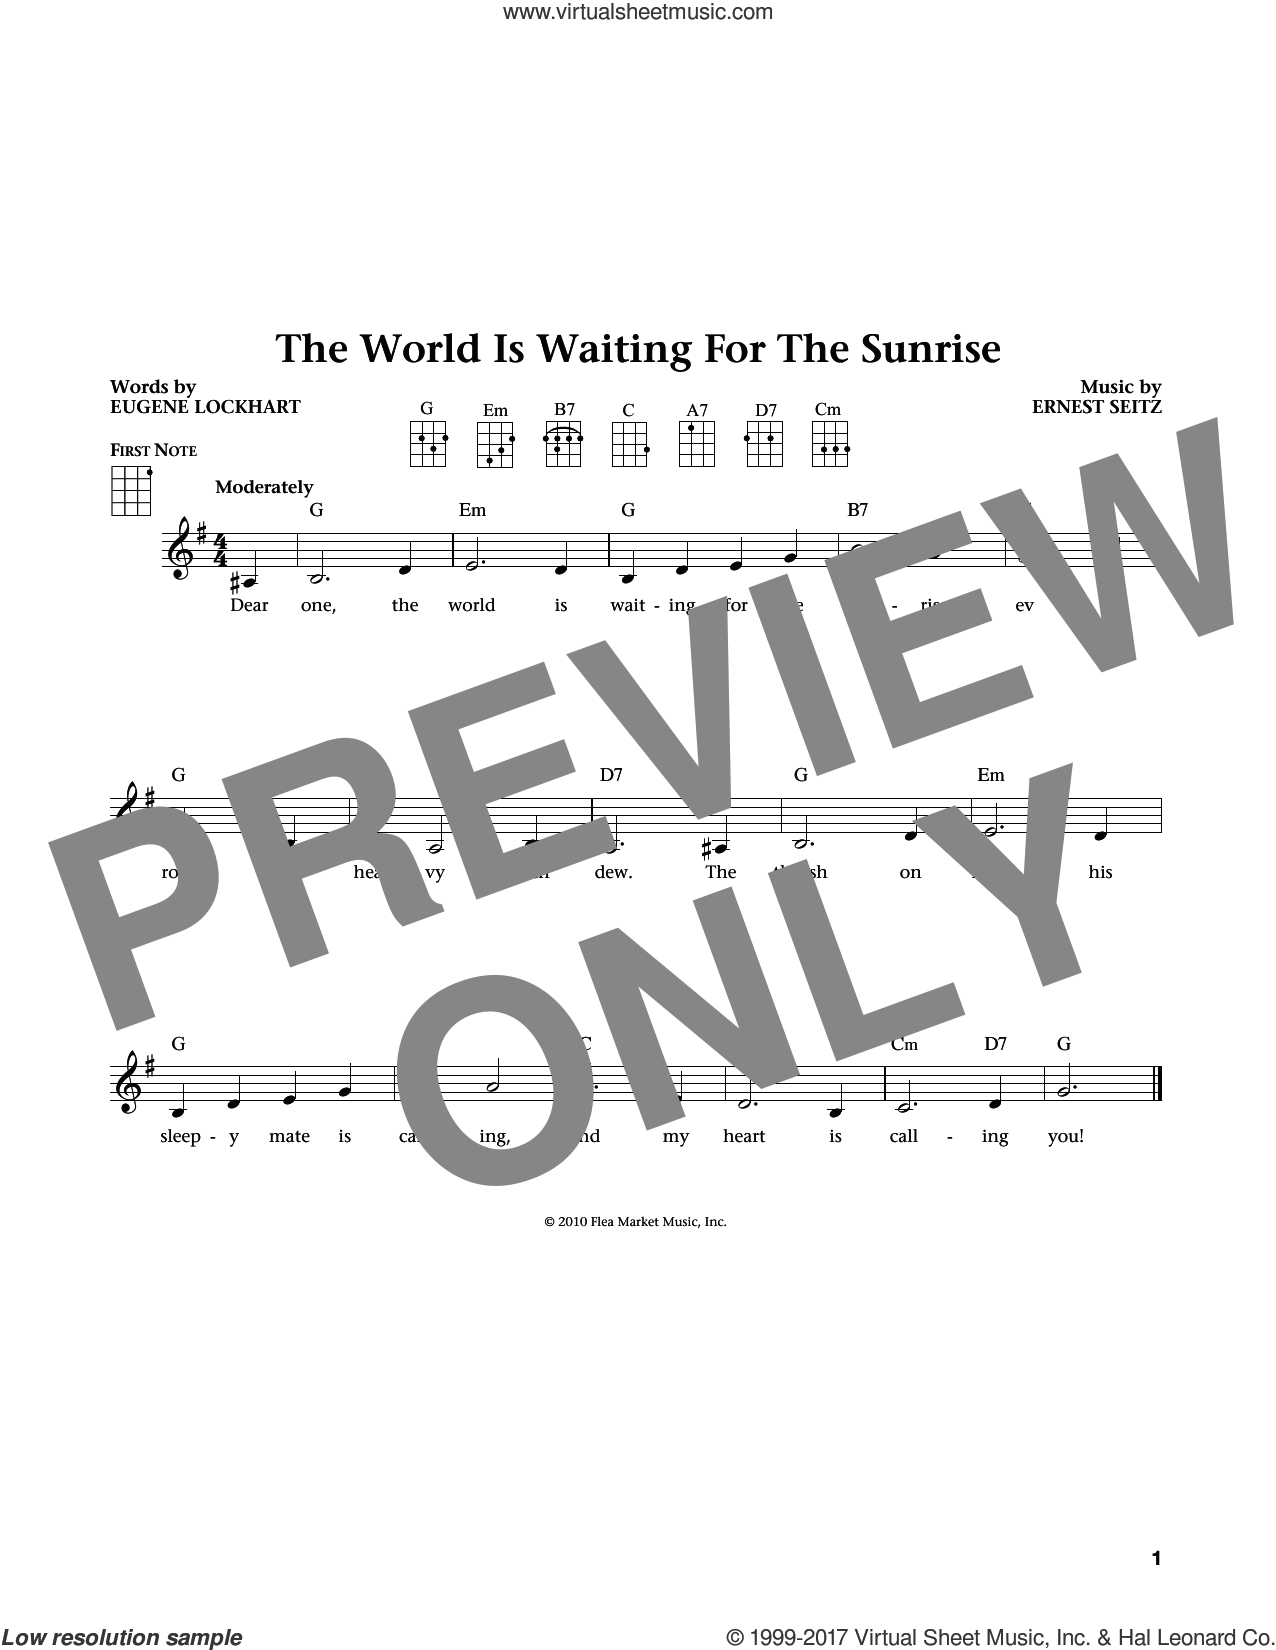 The World Is Waiting For The Sunrise (from The Daily Ukulele) (arr. Liz and Jim Beloff) sheet music for ukulele by Ernest Seitz, Jim Beloff, Liz Beloff and Eugene Lockhart, intermediate skill level